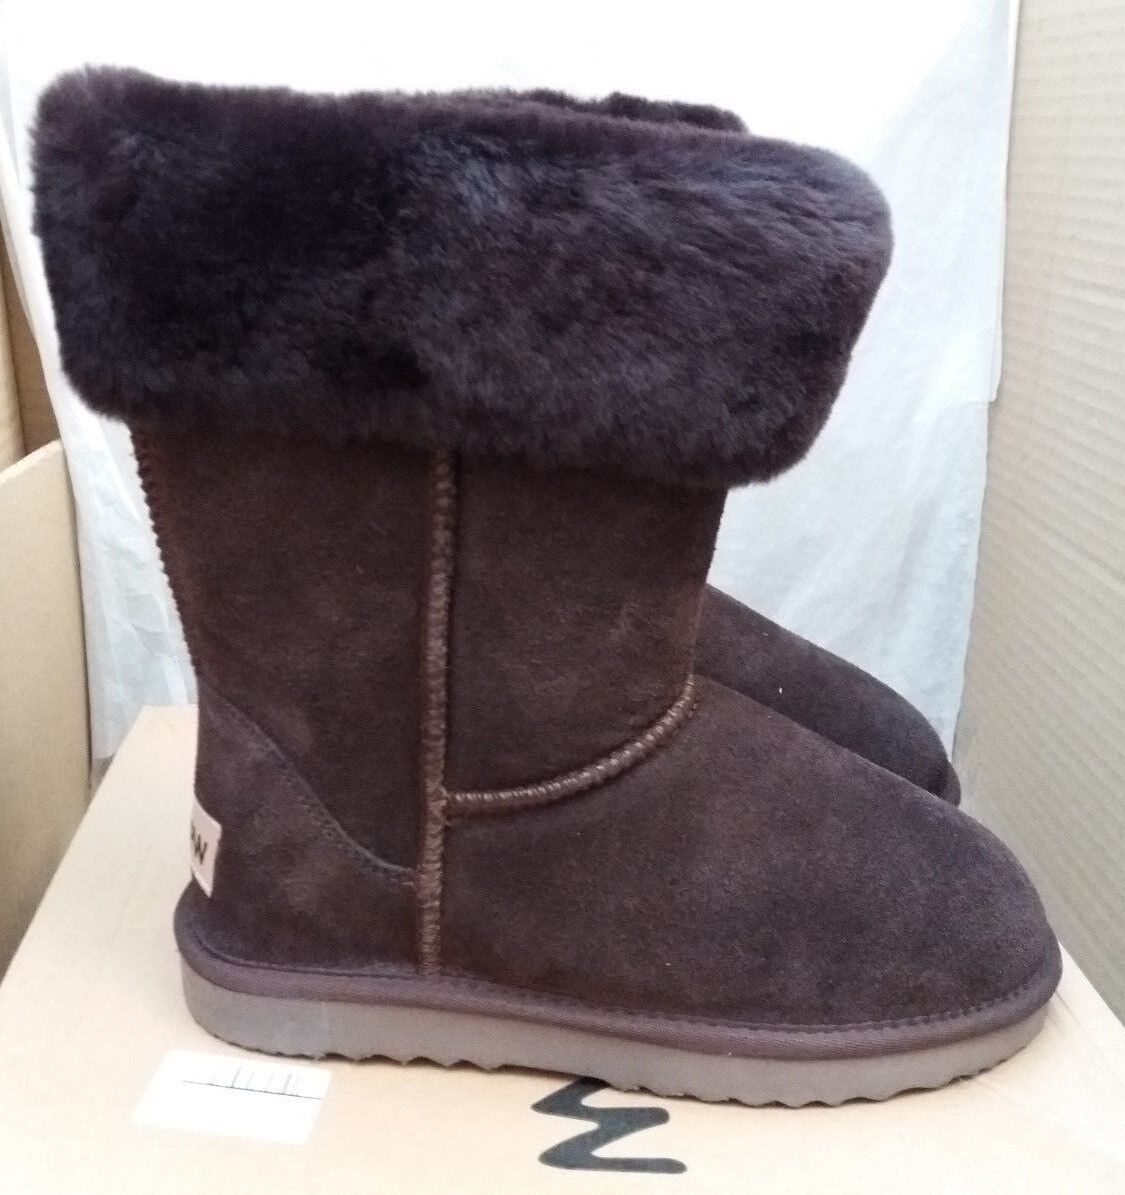 Snow Paw 5826COFL Suede & Sheepskin Winter Collar Stiefel -Coffee -Größe -Größe -Coffee UK 5 EU 38 73aea1